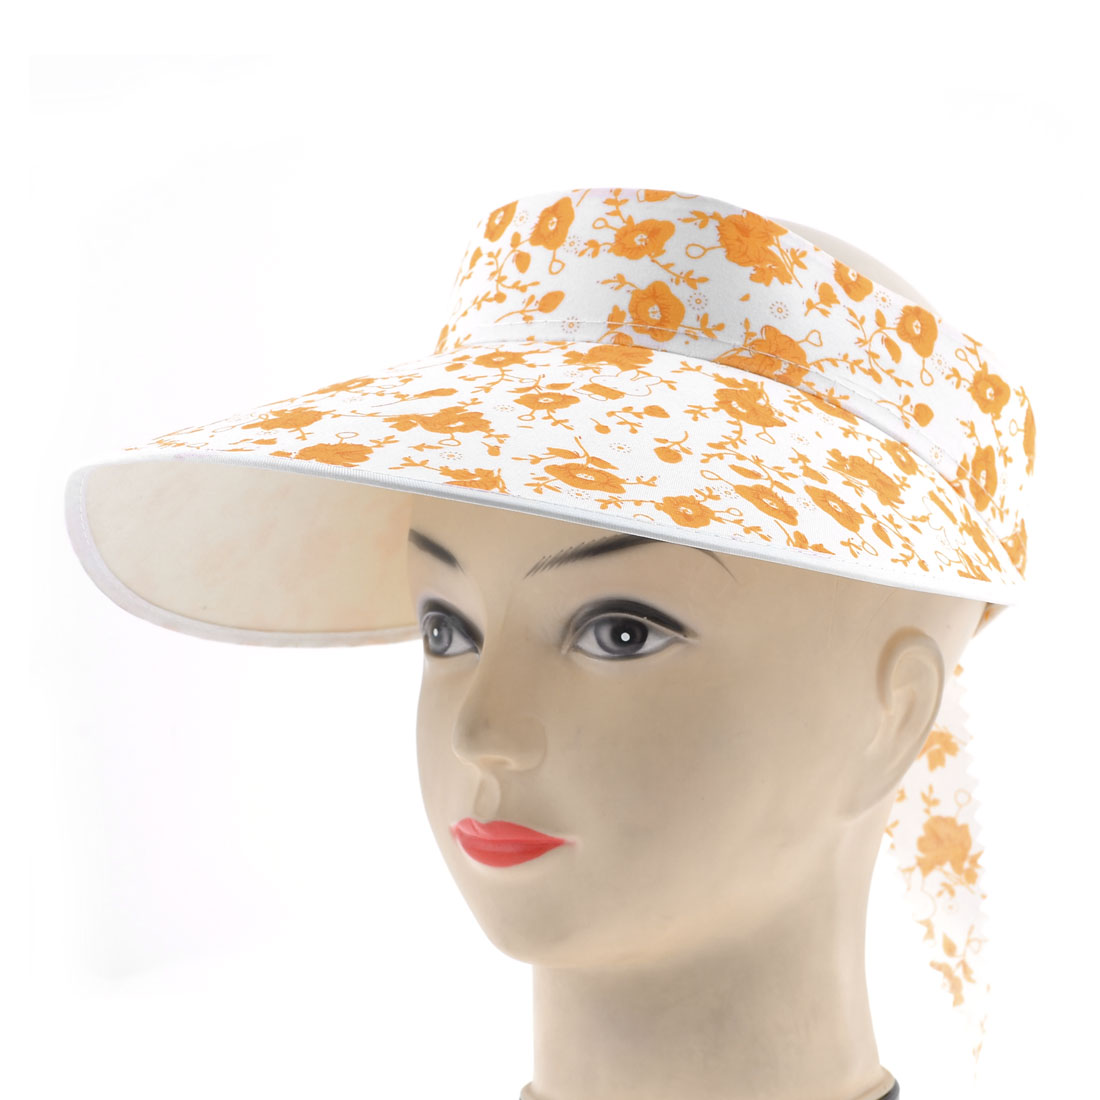 Ladies Flower Print Big Brim Summer Elastic Visor Peaked Cap Hat Orange White